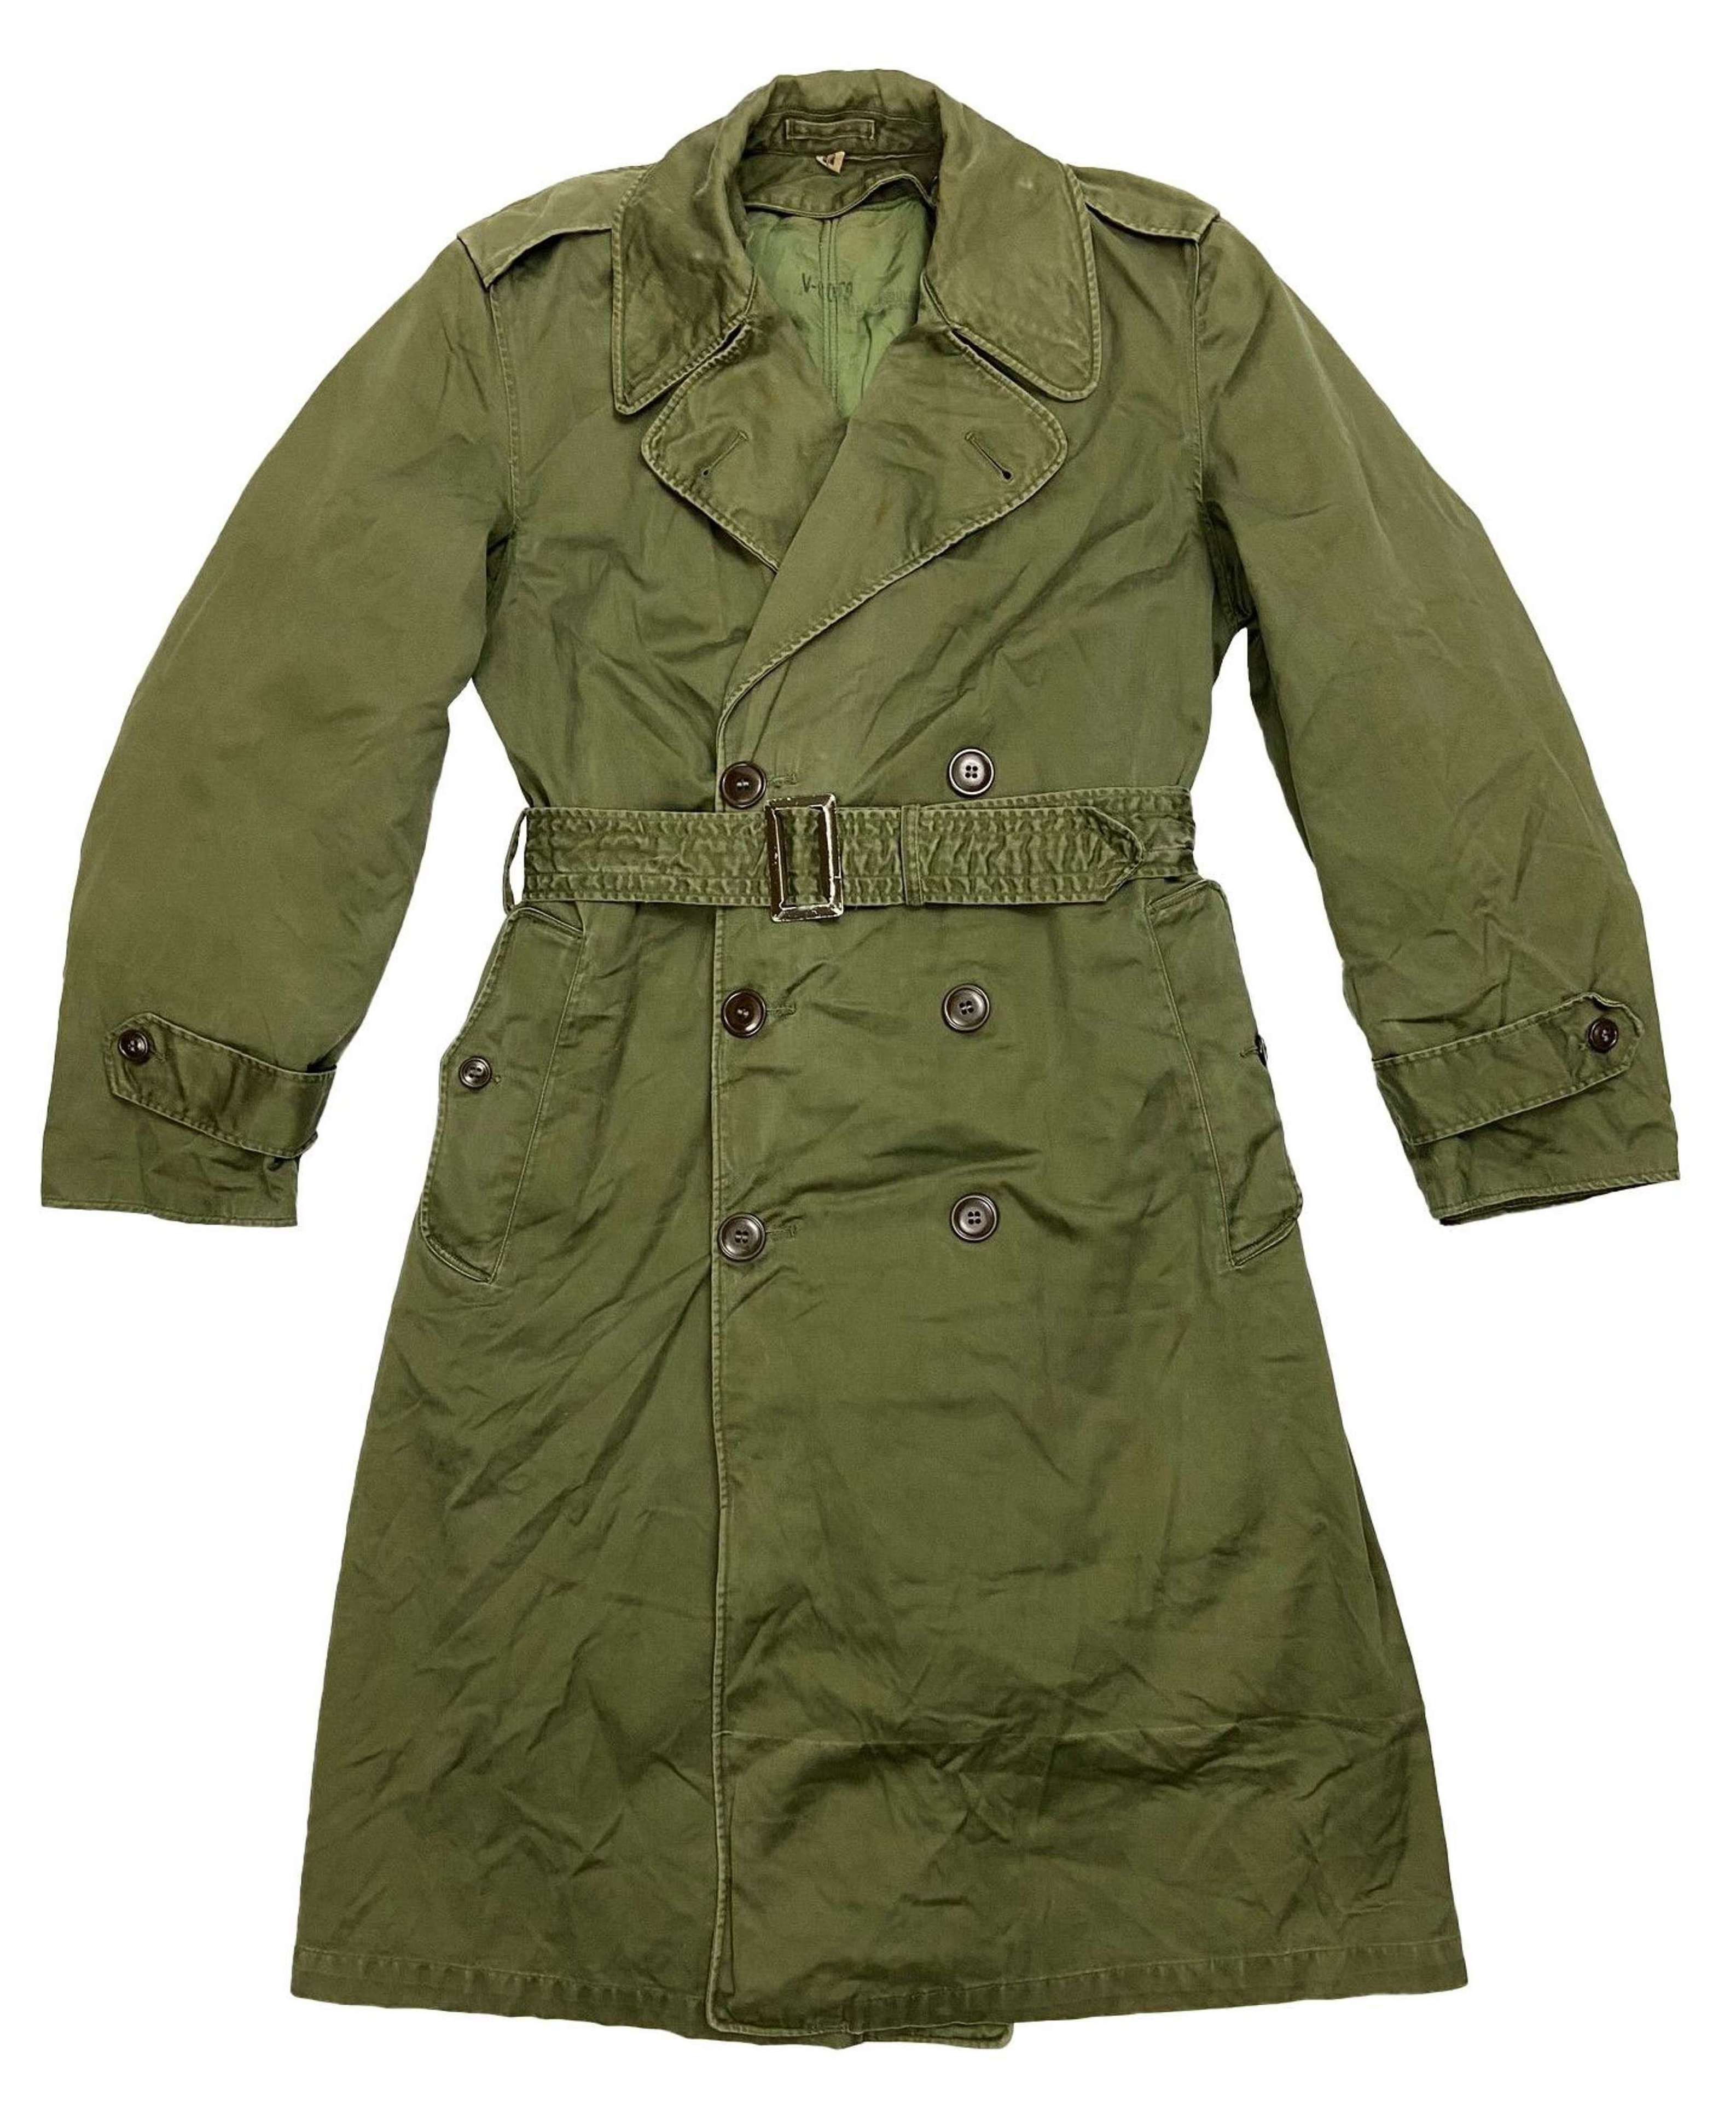 Original 1958 Dated US Army O.G 107 Raincoat - Size Regular Small